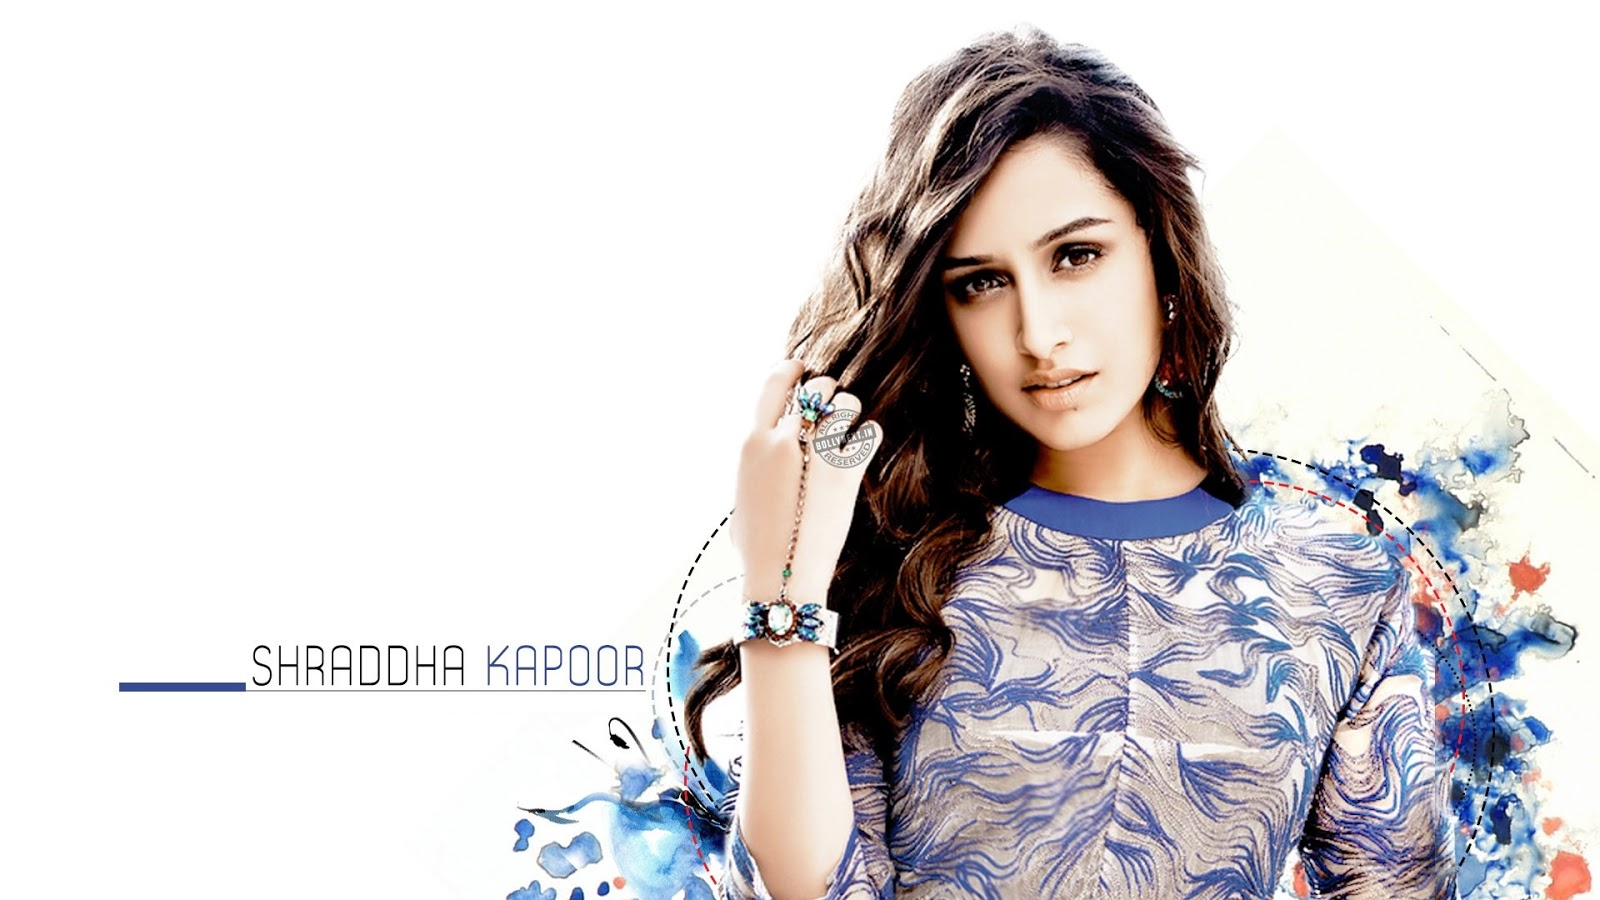 Shraddha Kapoor Photos Images Pictures Wallpapers 1080p